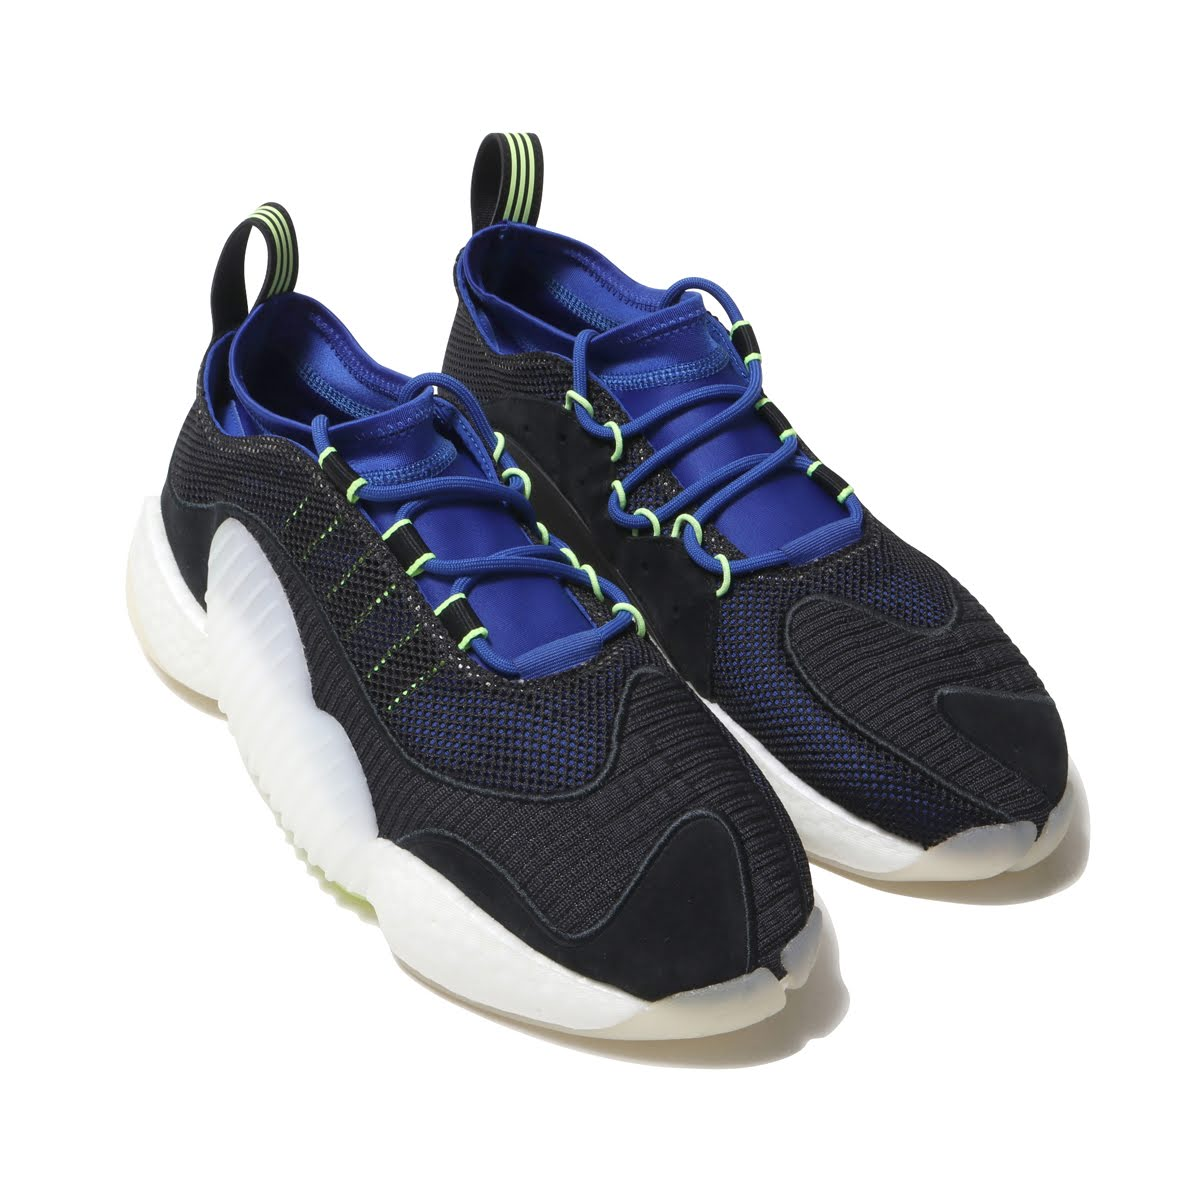 online store dbfdb 16f5a adidas Originals CRAZY BYW LVL II (CORE BLACKRUNNING WHITEHI-RES YELLOW) (Adidas  originals crazy BYW LVL II)